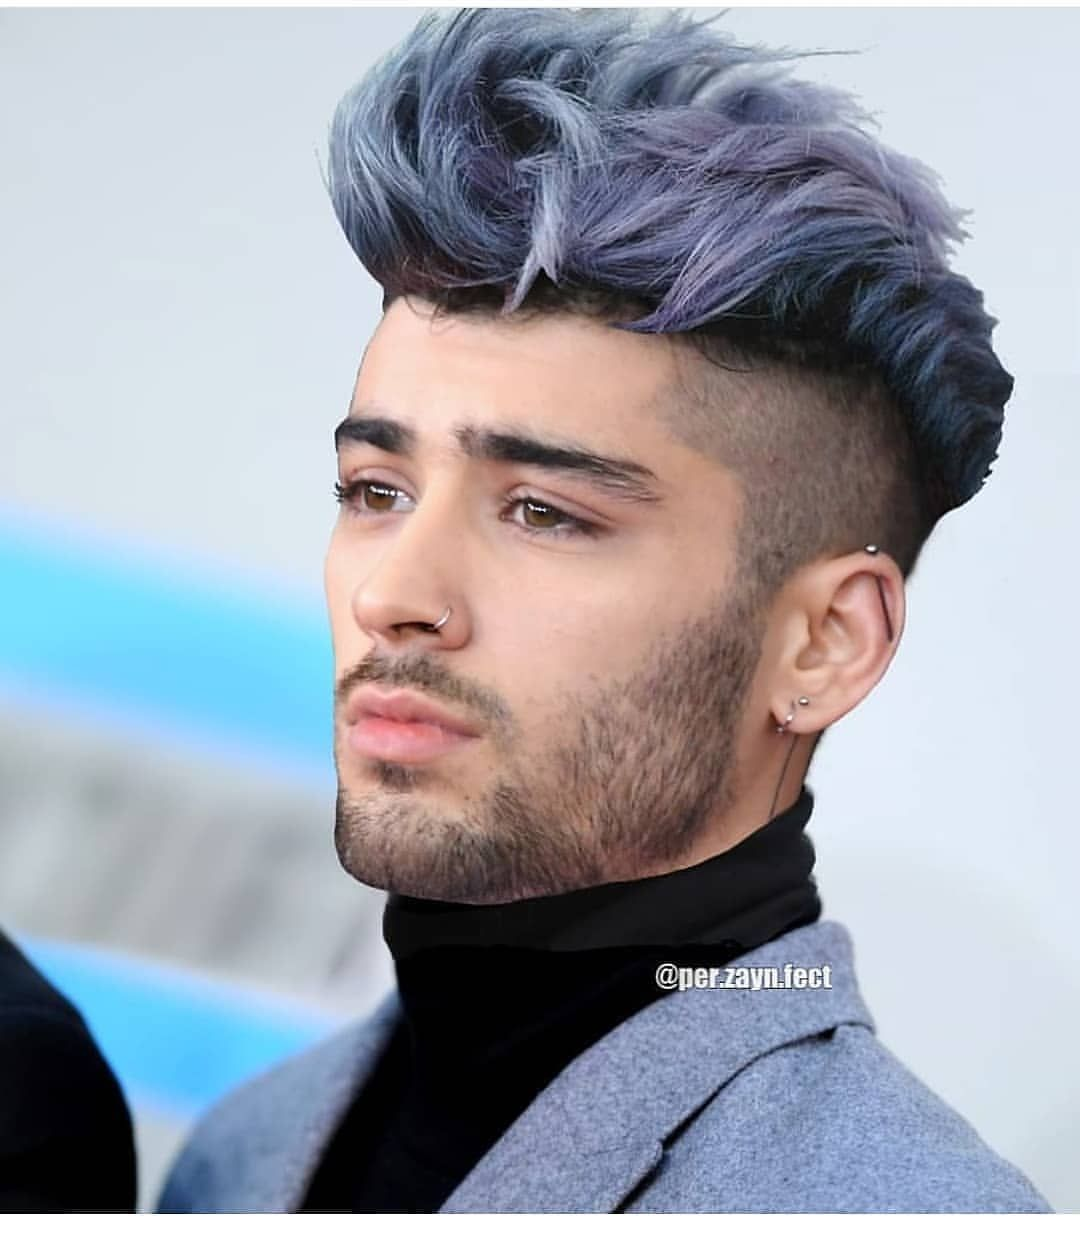 Mens Haircut And Colour Hairstyles Hair Haircolor Haircut Hairstylist Summervibes Wintervibes Ootd Ootdfash